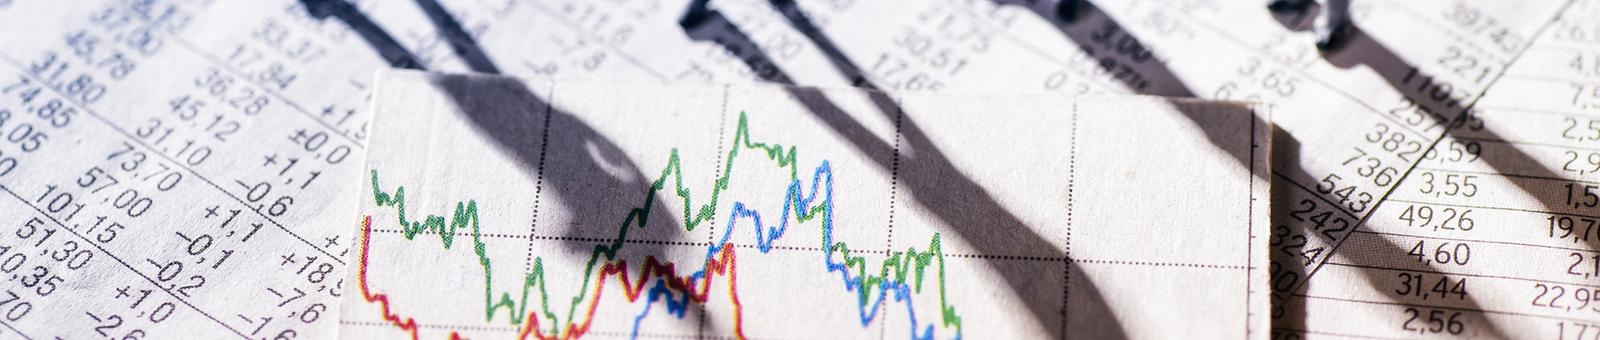 Employee stock options: Tax implications for employer and employee | Canada